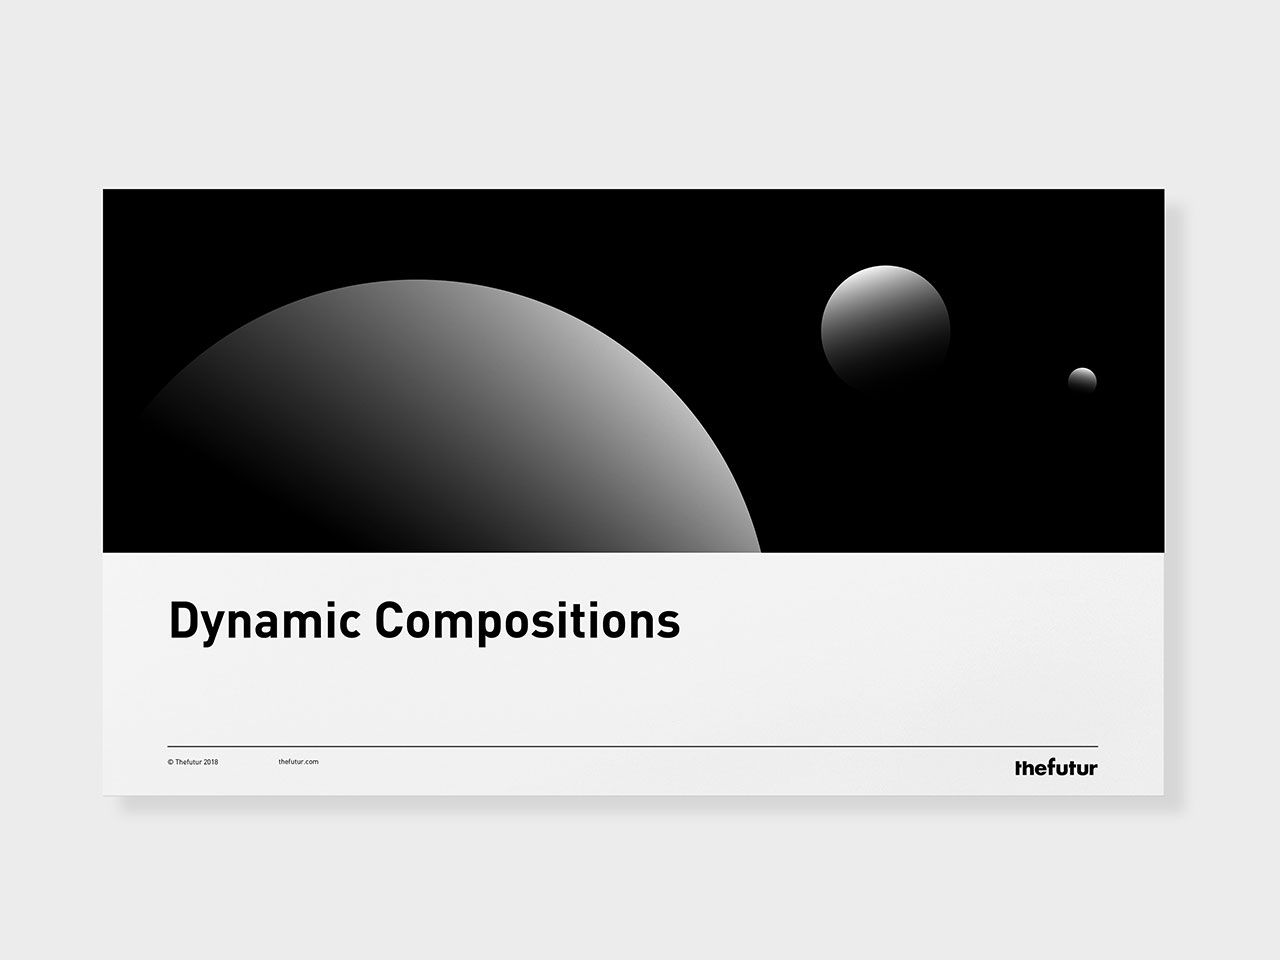 Completely Free Dynamic Composition Guide From Futur